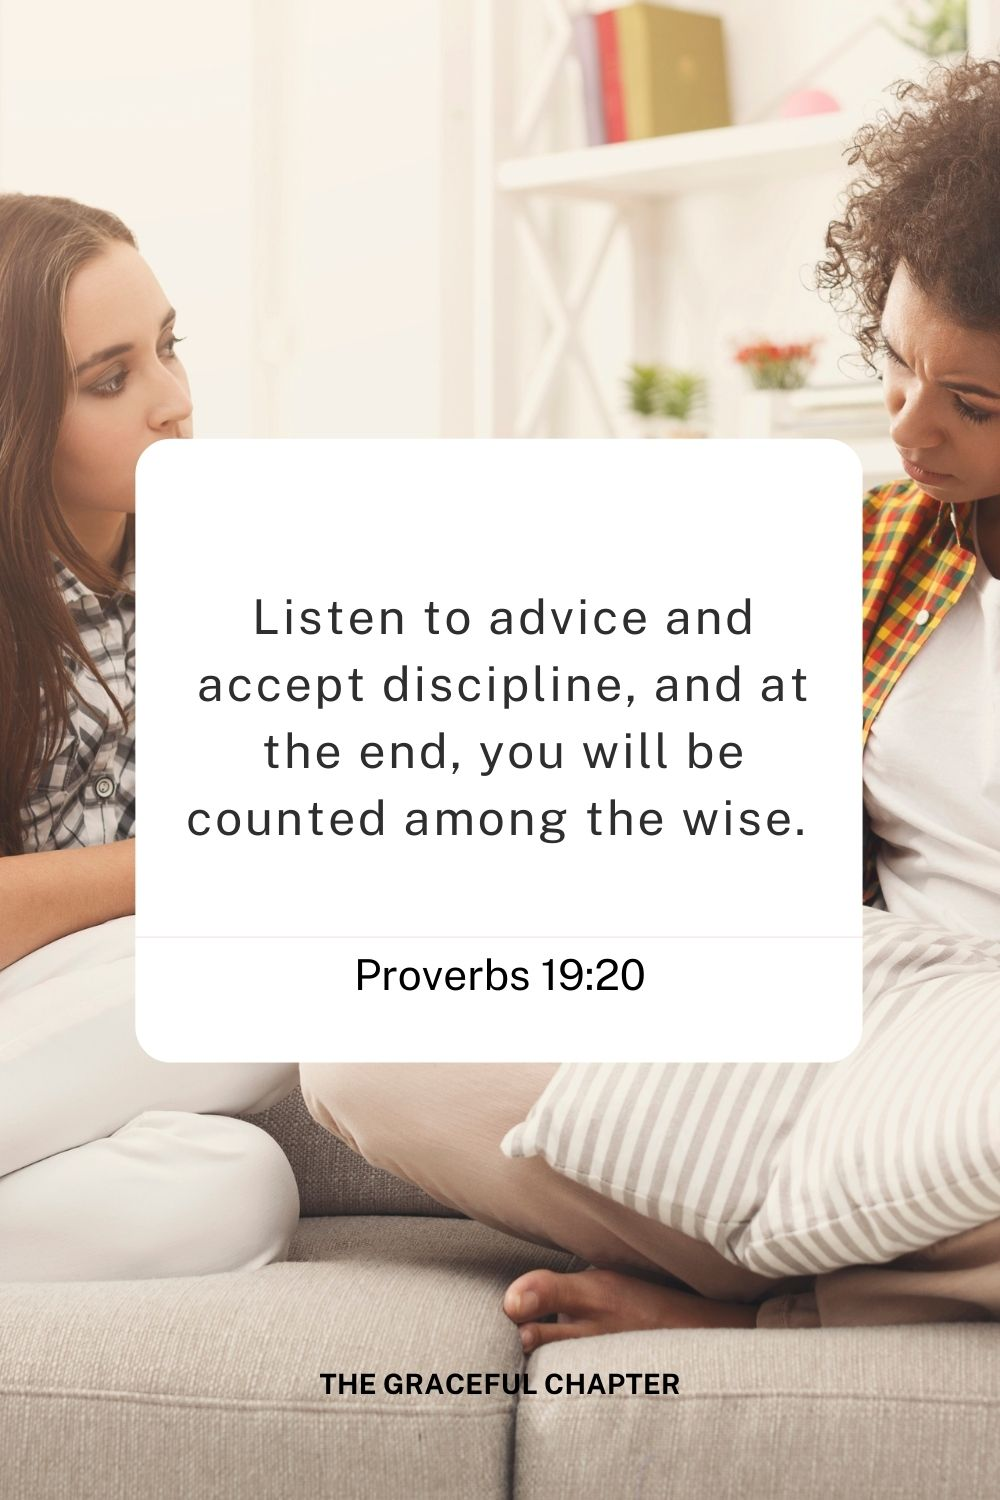 Listen to advice and accept discipline, and at the end, you will be counted among the wise.  Proverbs 19:20